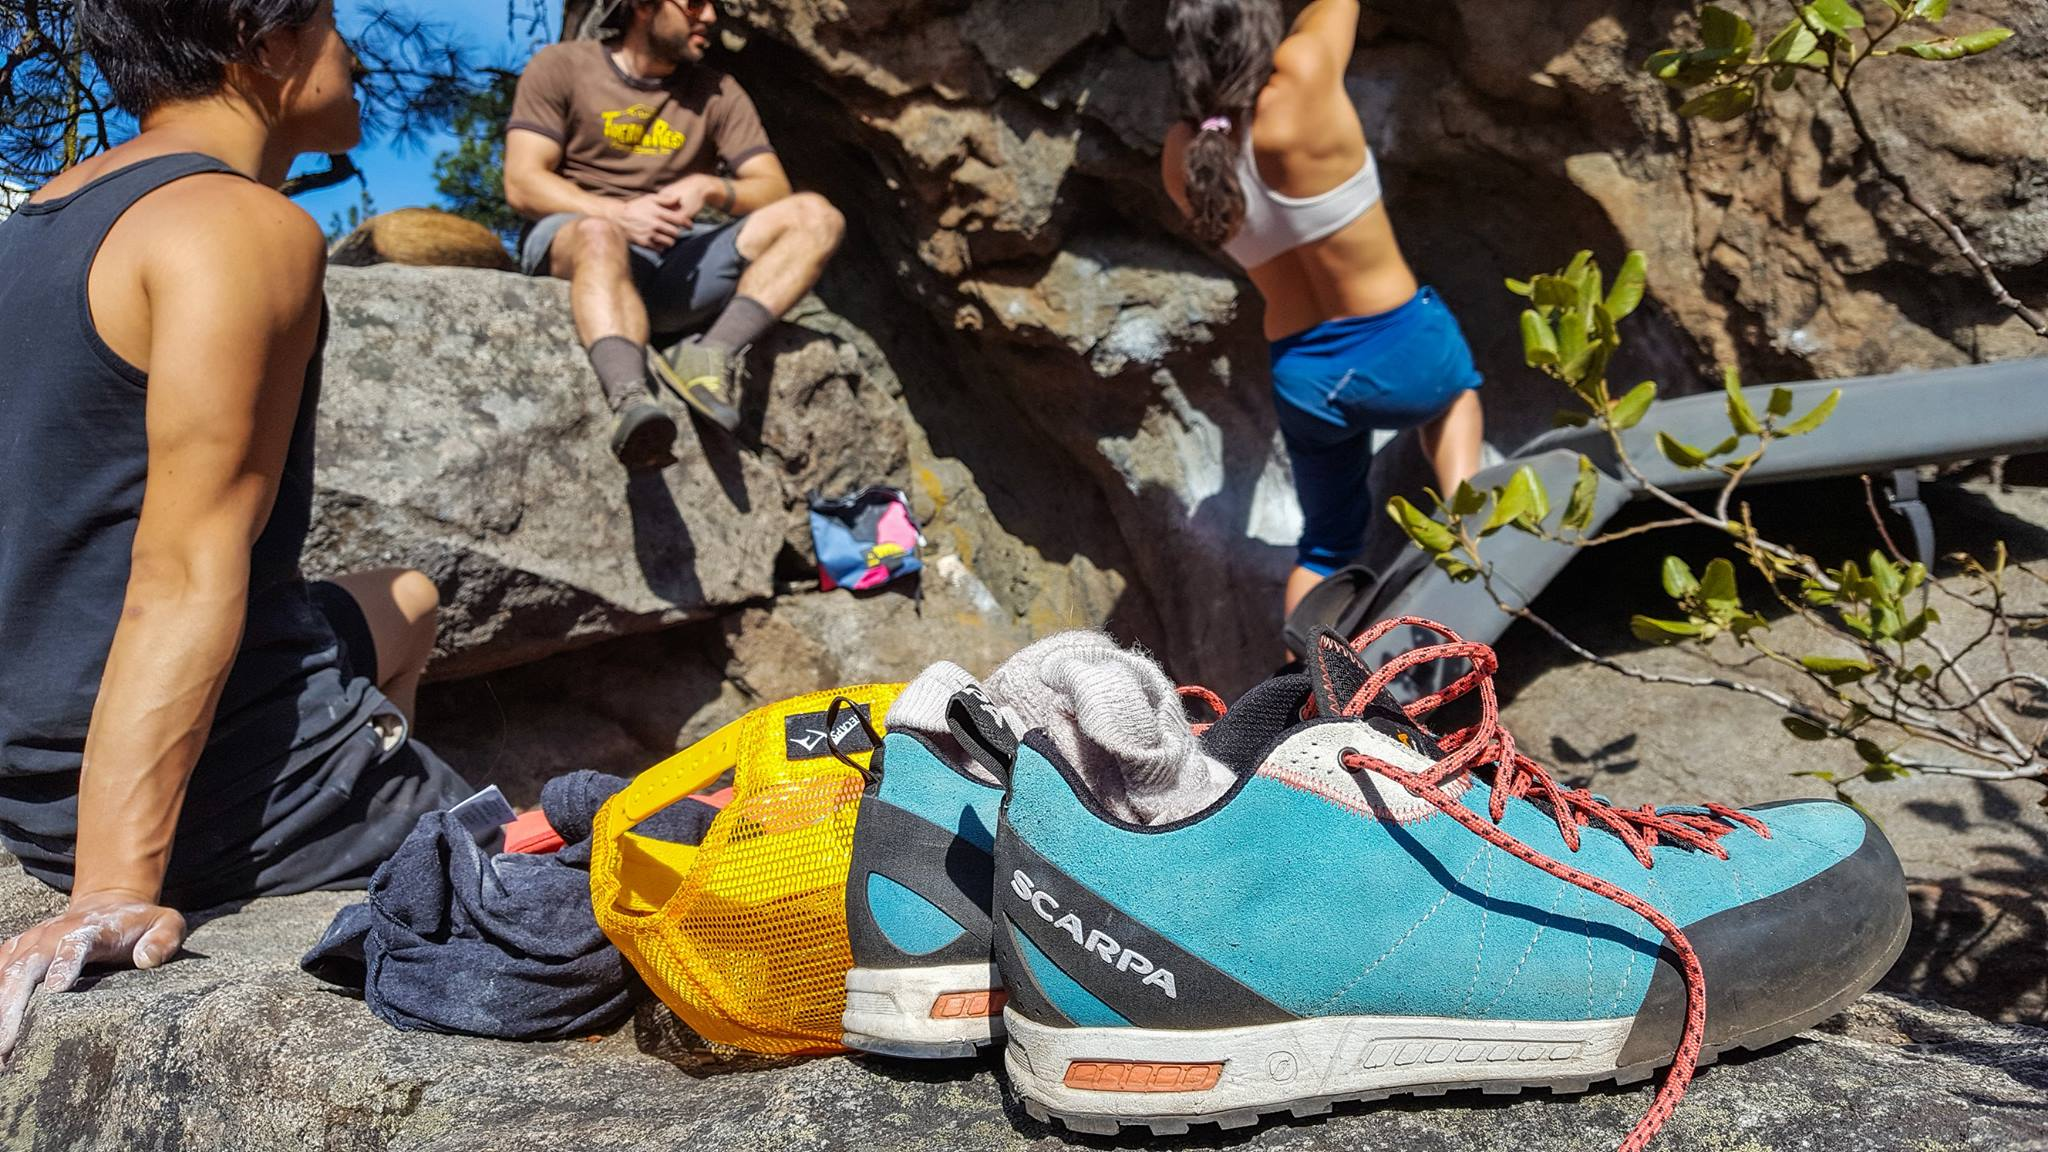 Scarpa approach shoe review